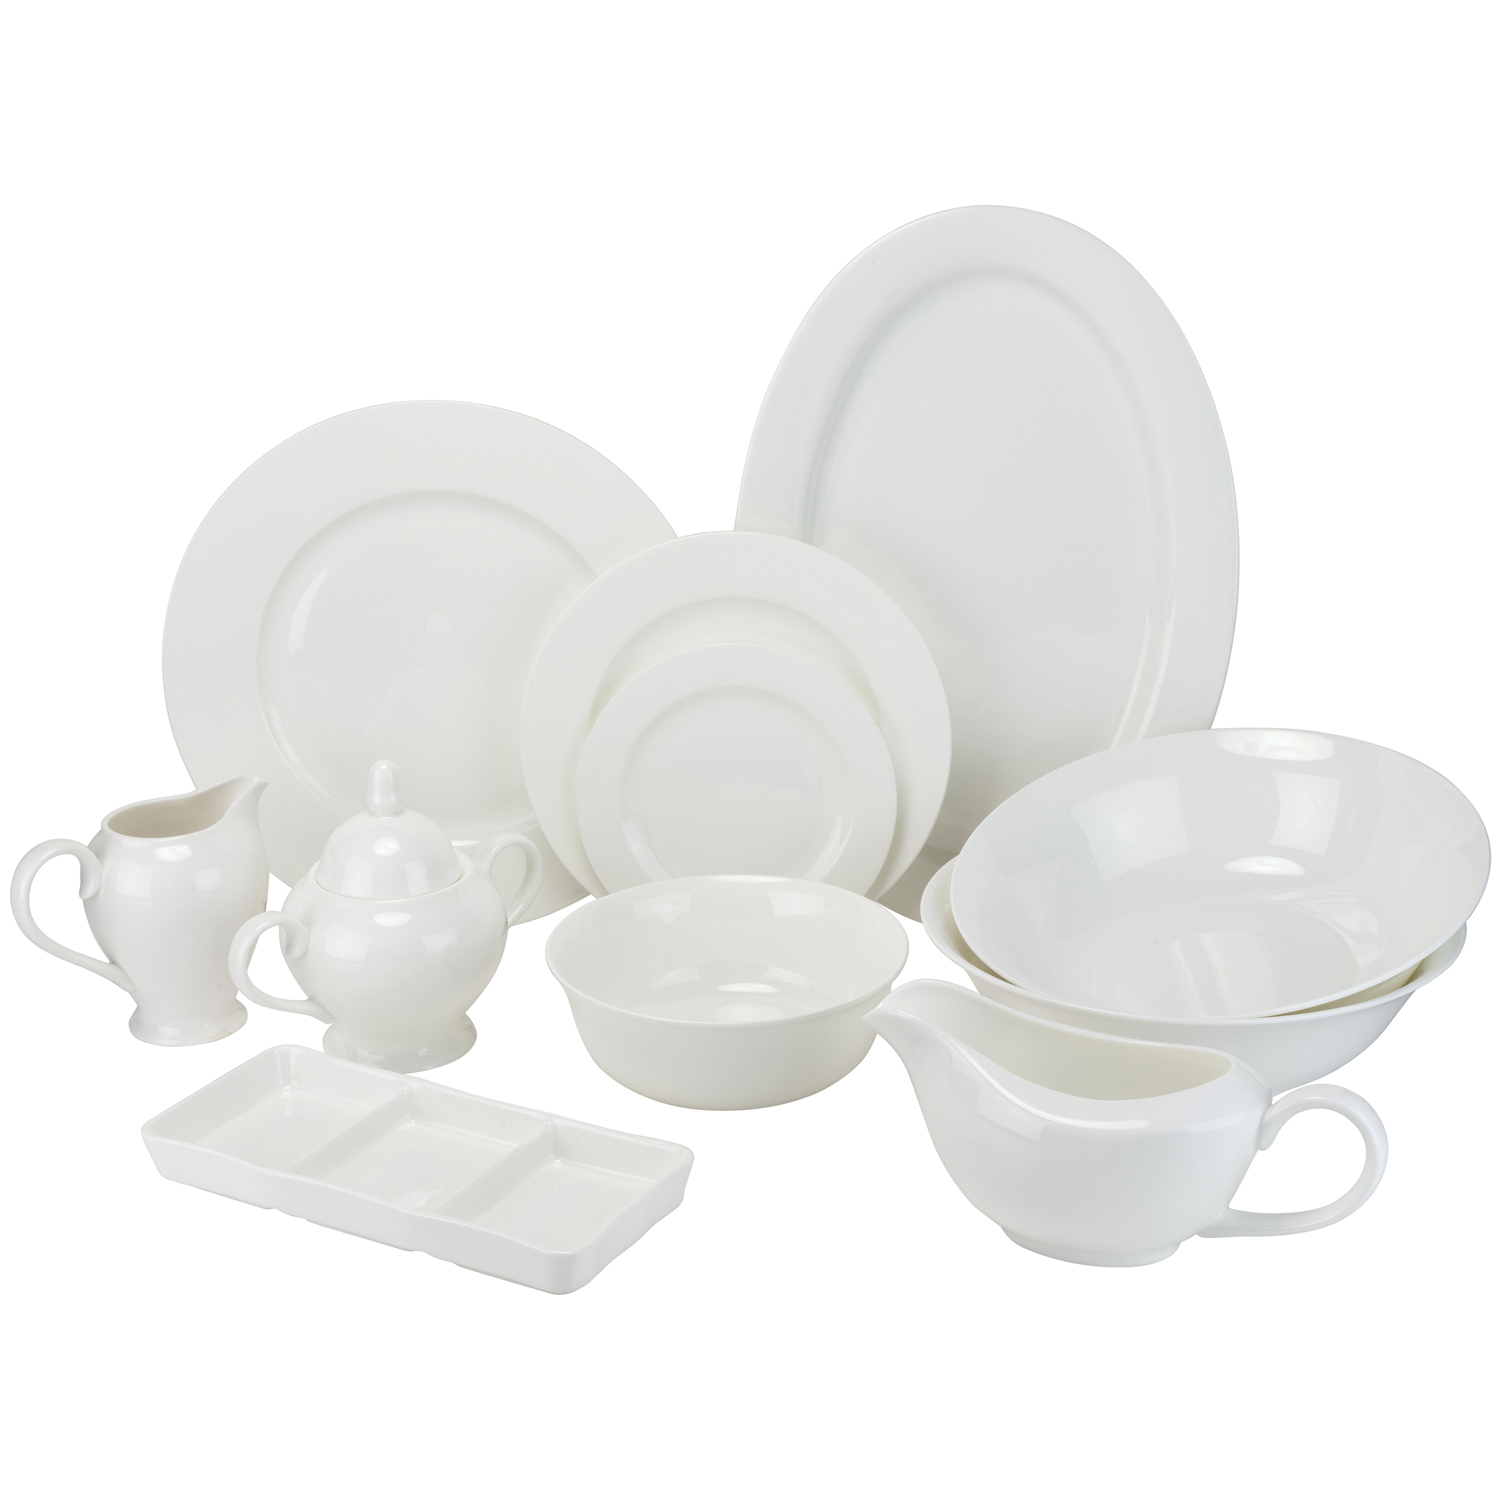 32-Pc Round Rim Bone China Dinnerware Set